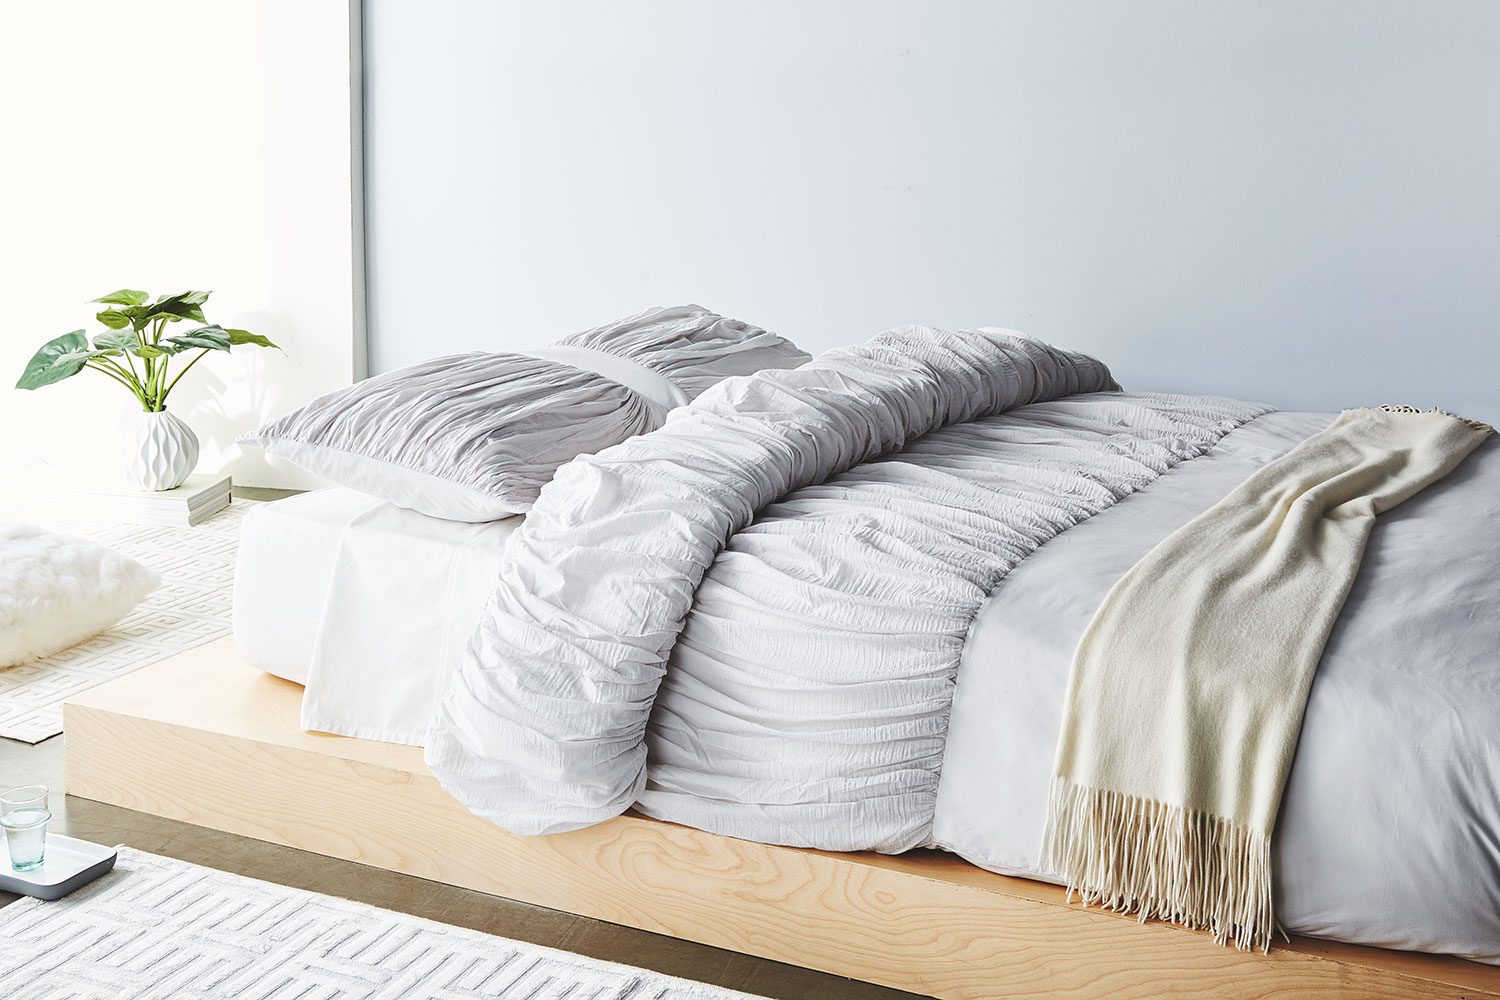 490183-New-&-Noteable-Bedding-&-More4082.jpg